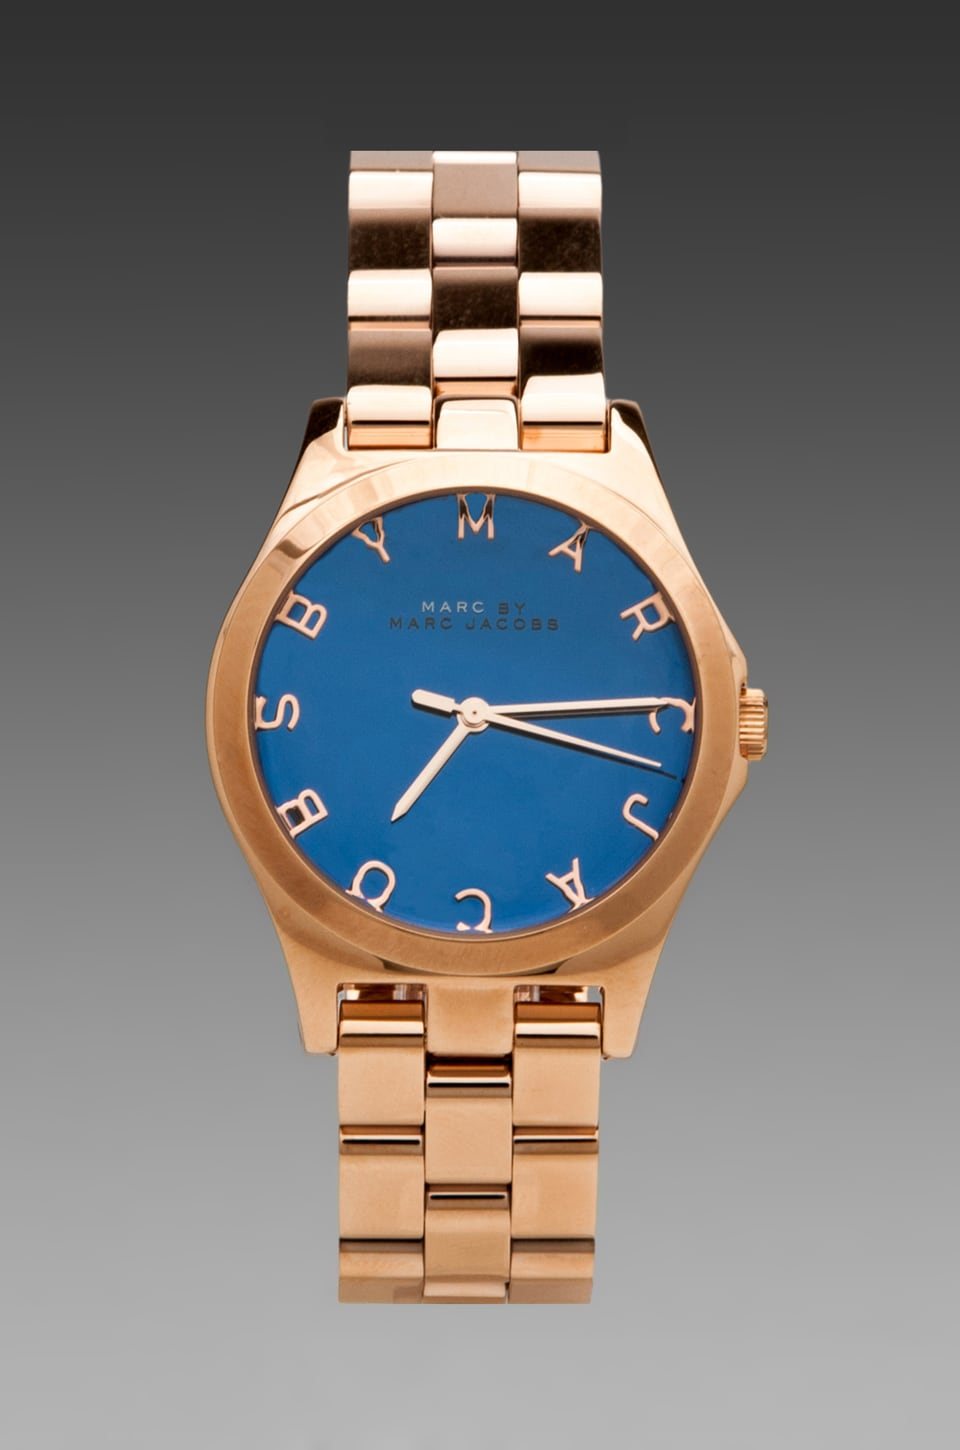 Marc by Marc Jacobs Henry Watch in Malibu Blue/Rosegold